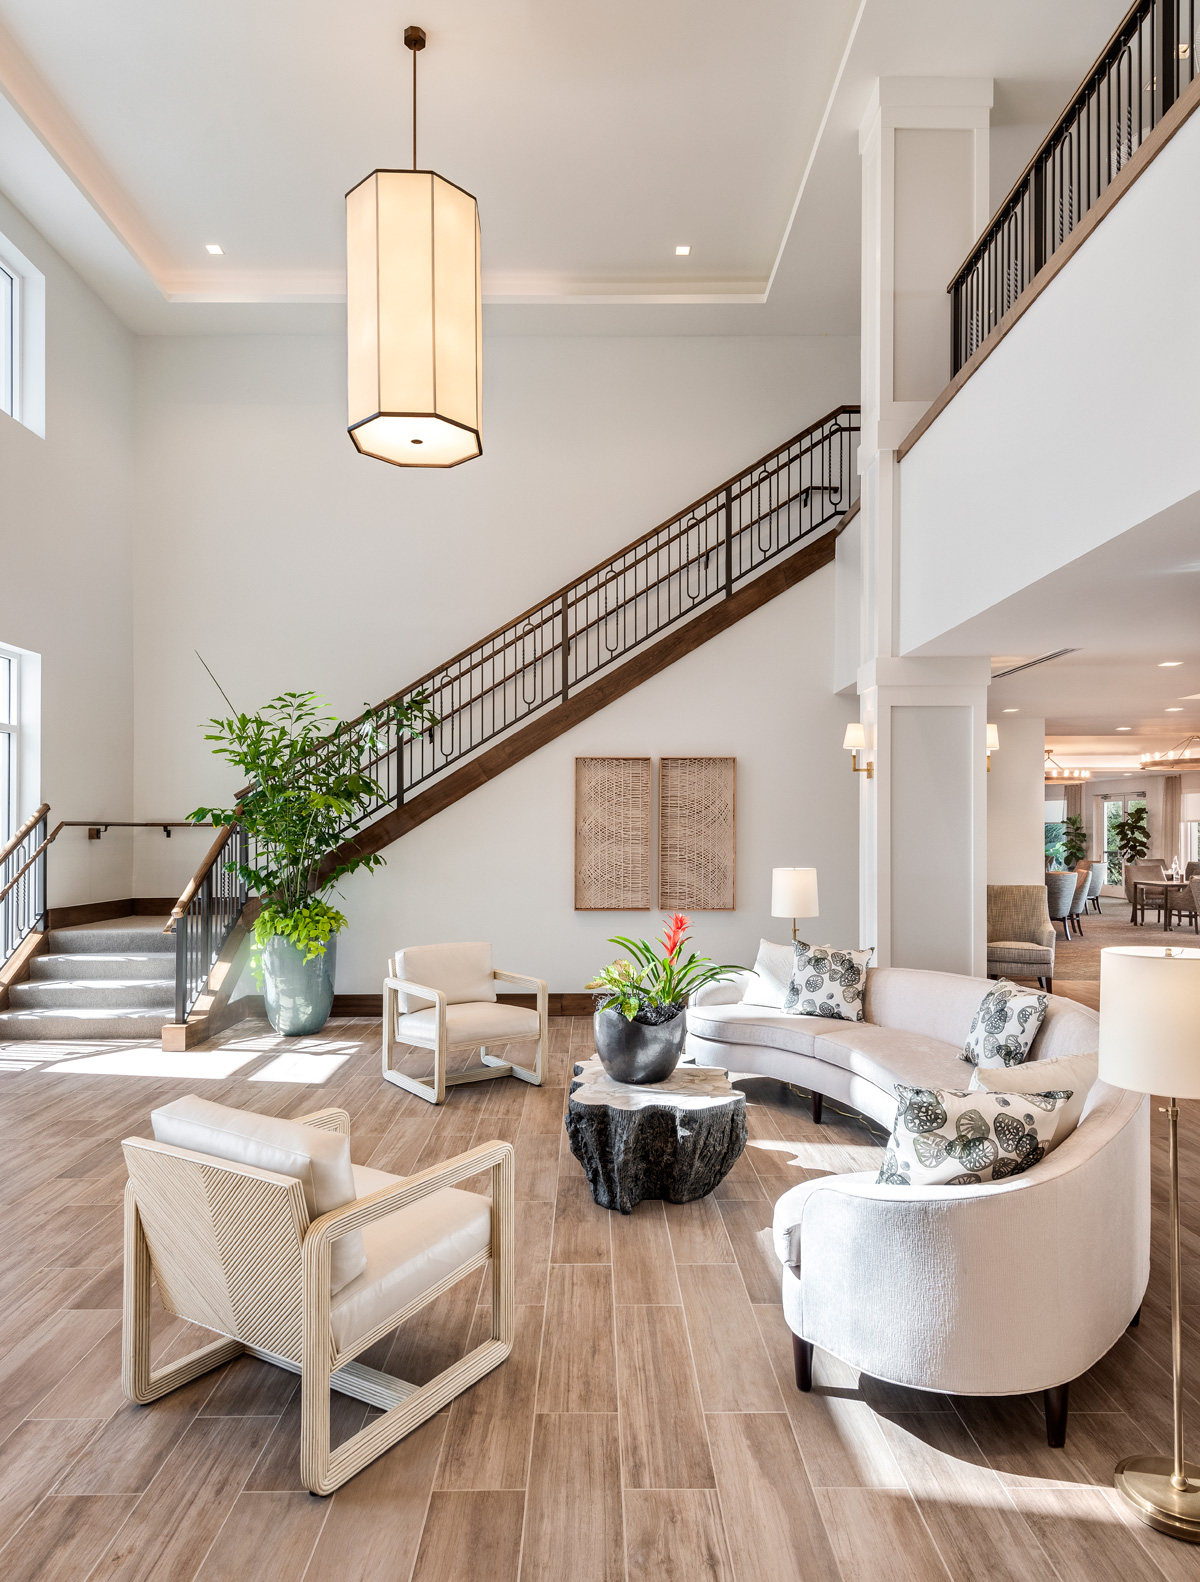 The Vistas Assisted Living Lobby greets visitors over looks the courtyard pool and hosts social events.